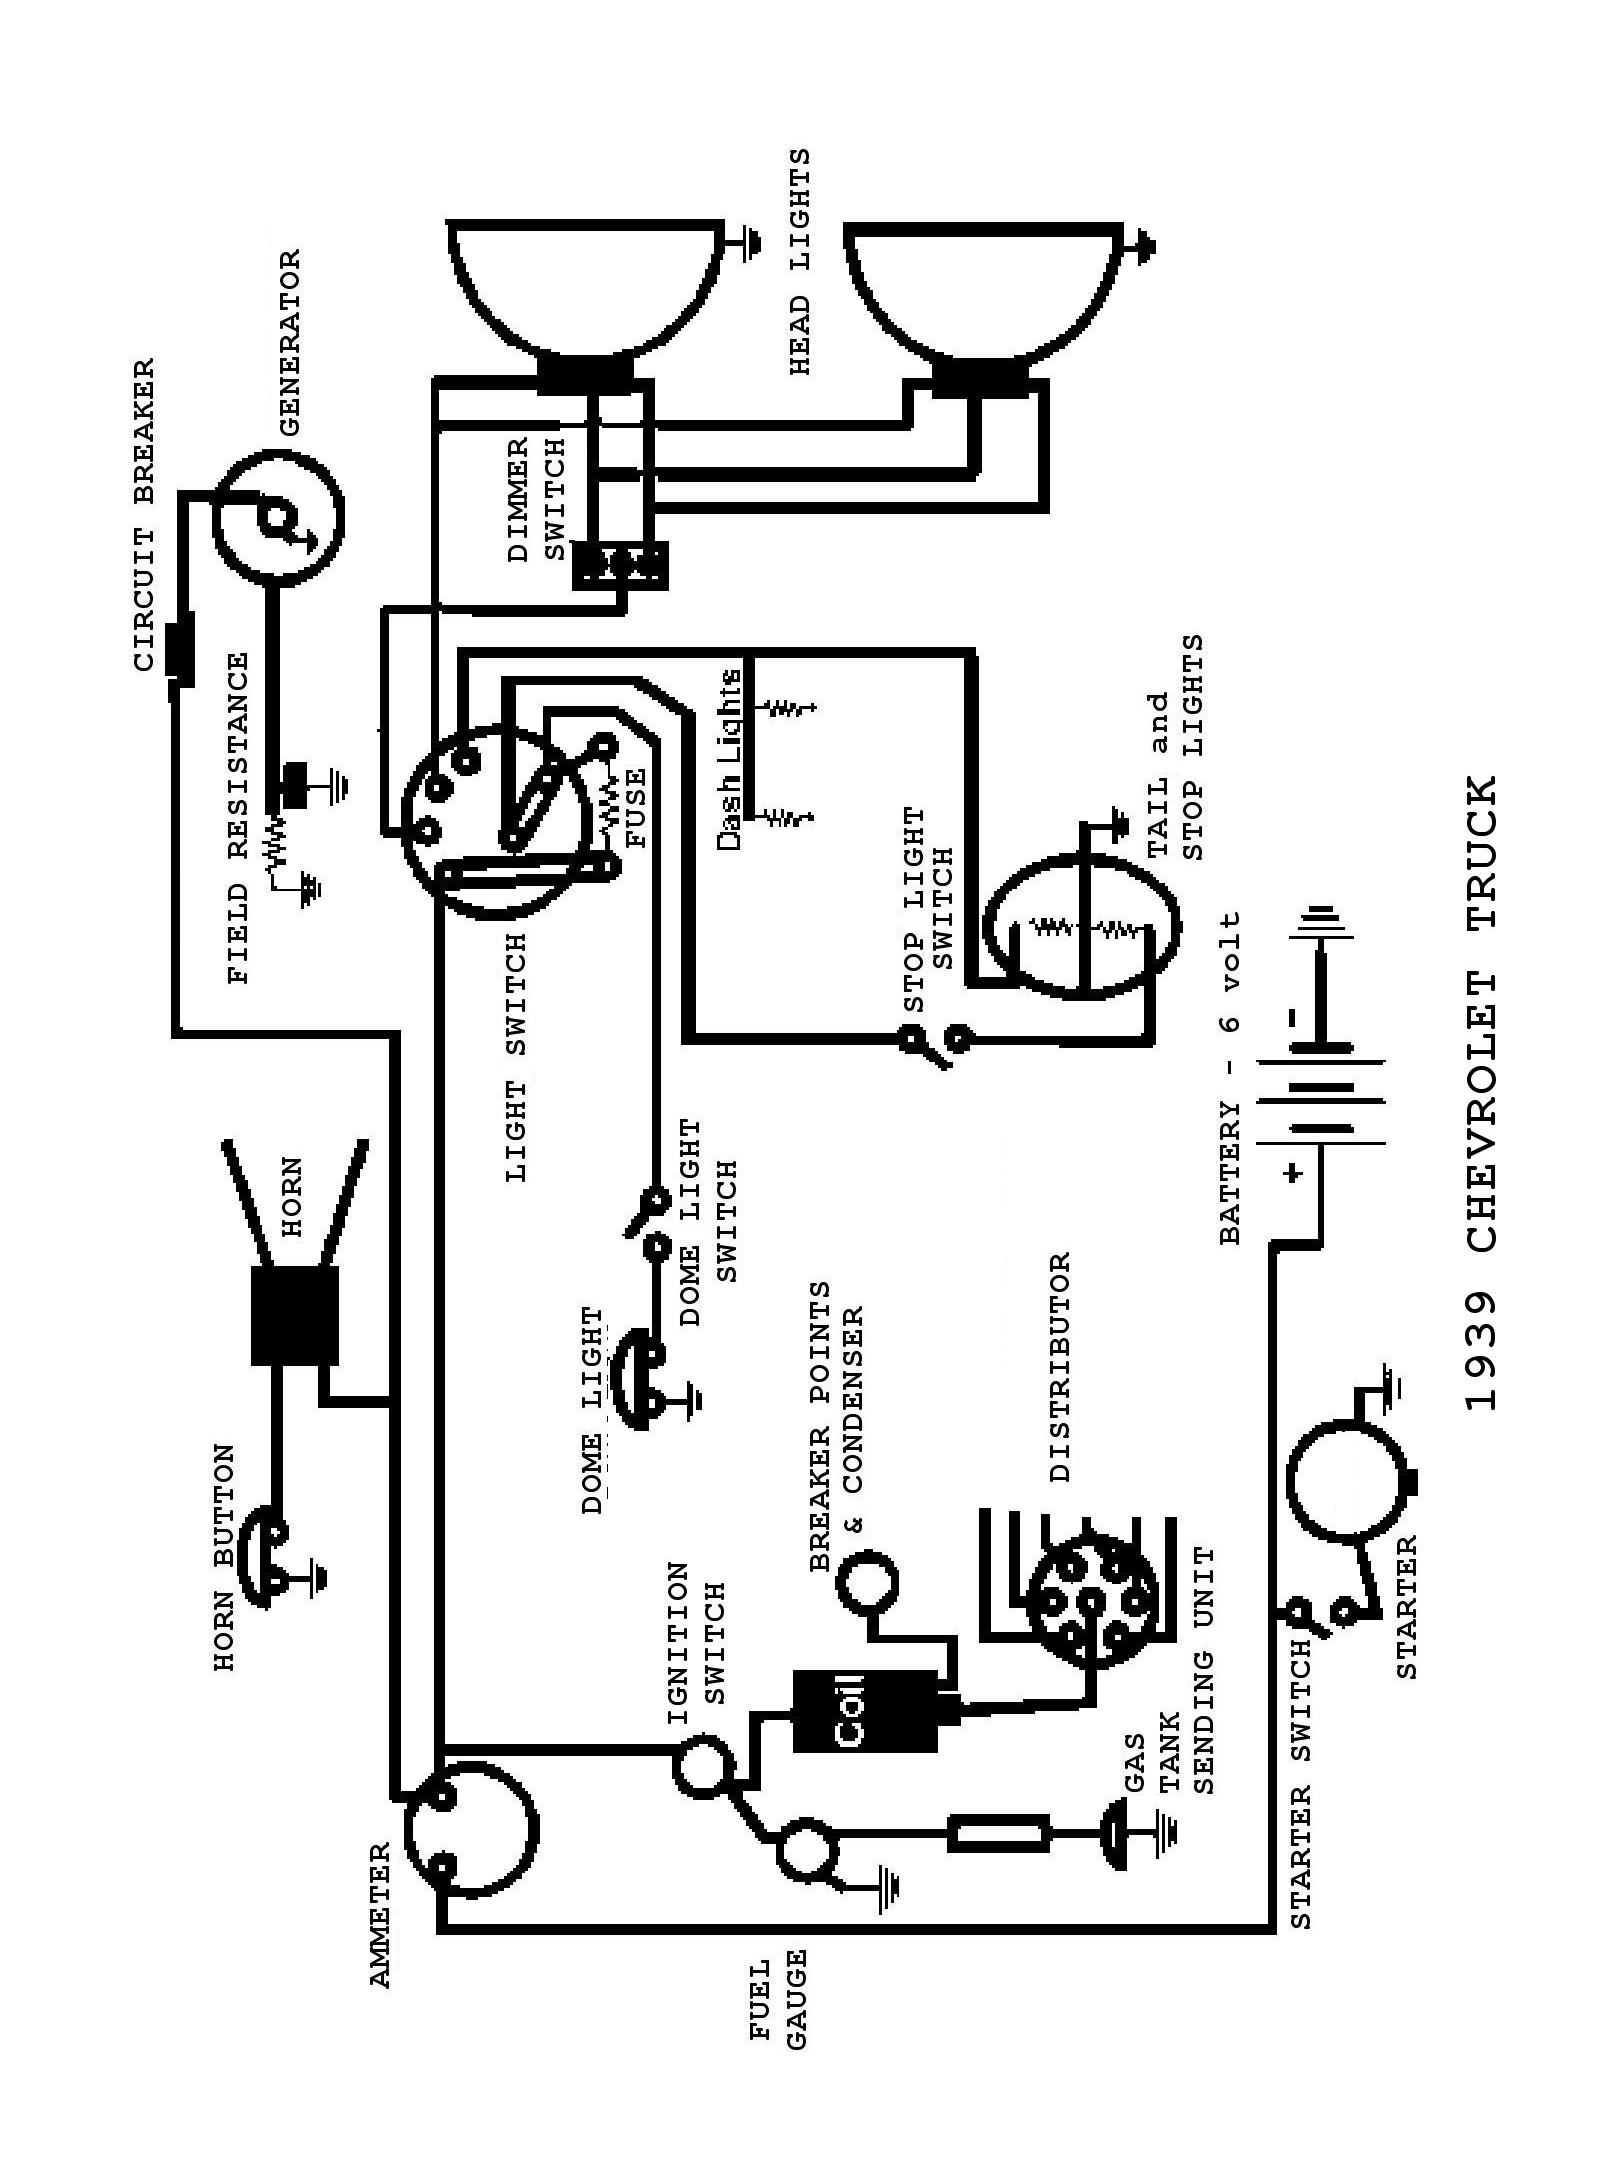 39truck wiring diagram for 1953 ford jubilee the wiring diagram  at sewacar.co